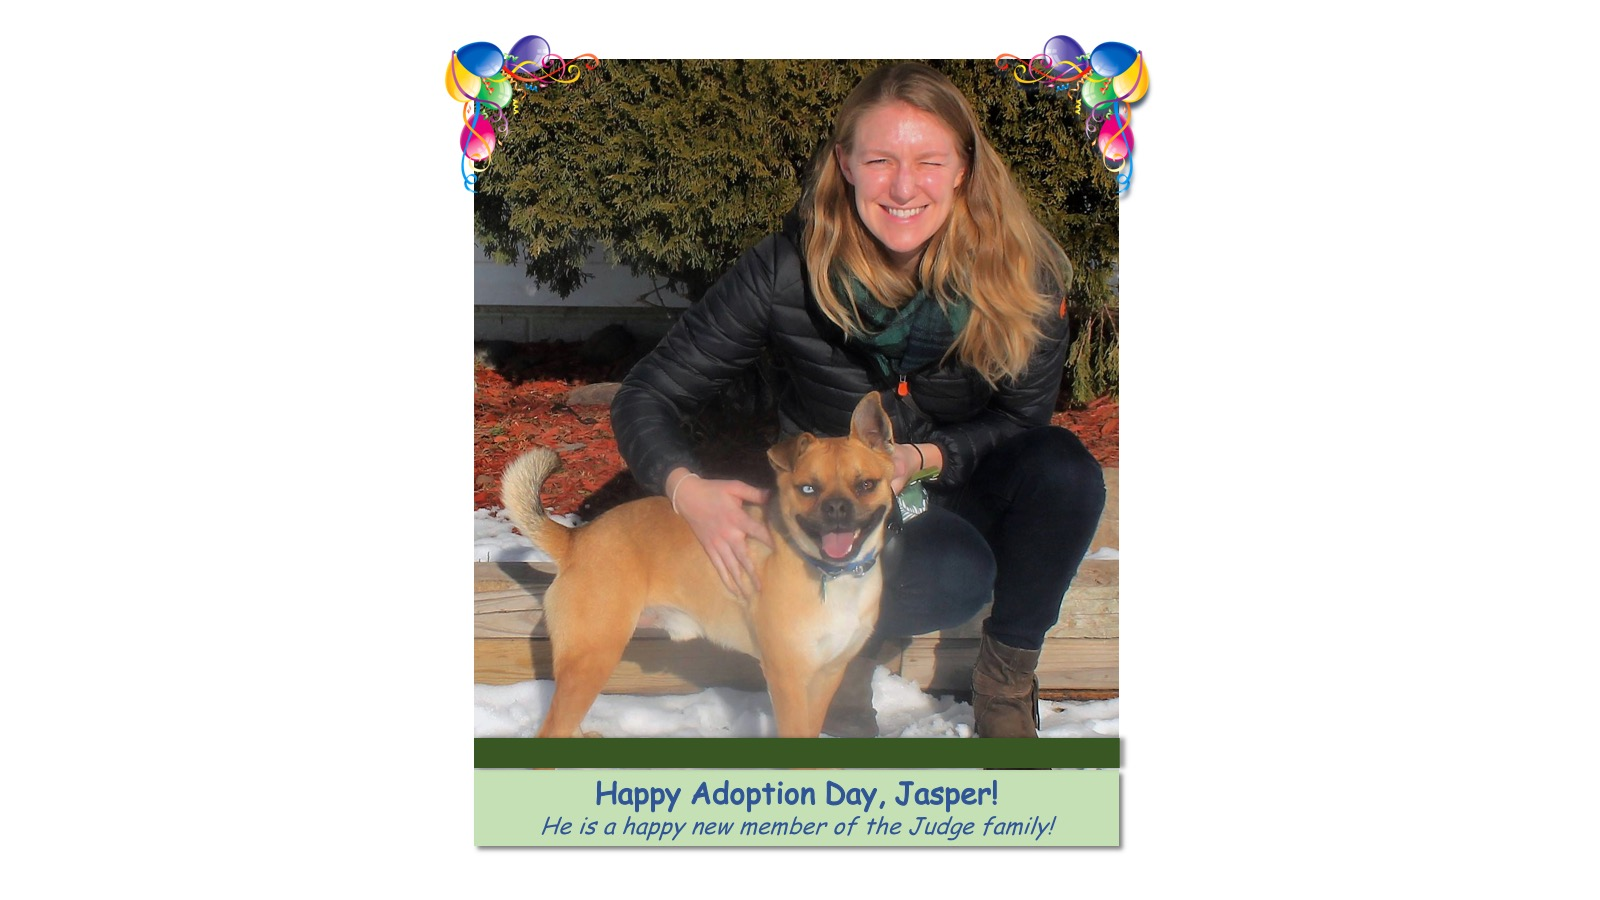 Jasper_Adoption_Photo_2018.jpg